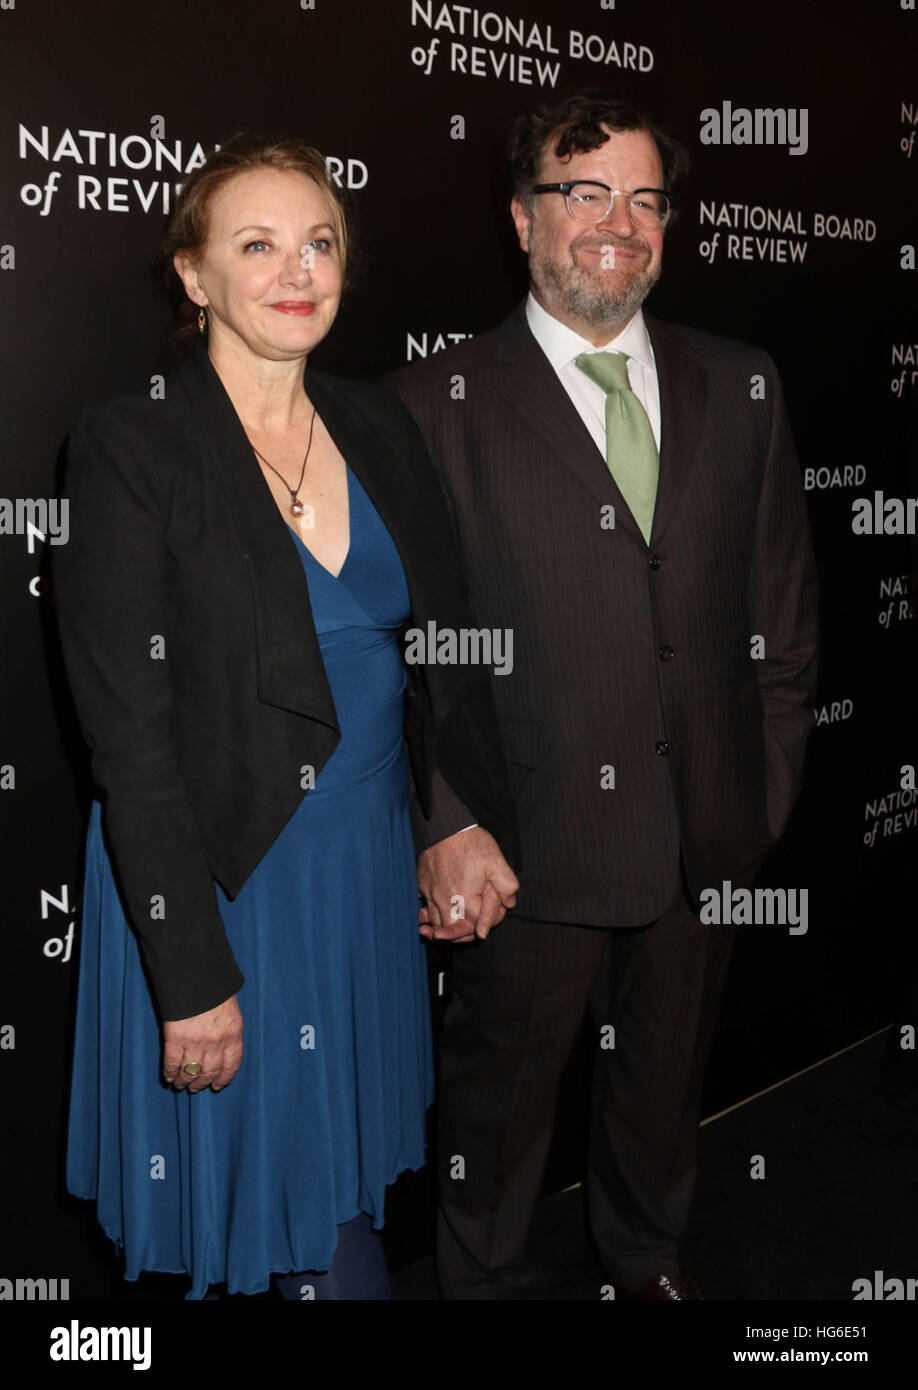 New York, New York, USA. 4th Jan, 2017. Actor KENNETH LONERGAN and his wife J. SMITH-CAMERON attend the 2016 National - Stock Image